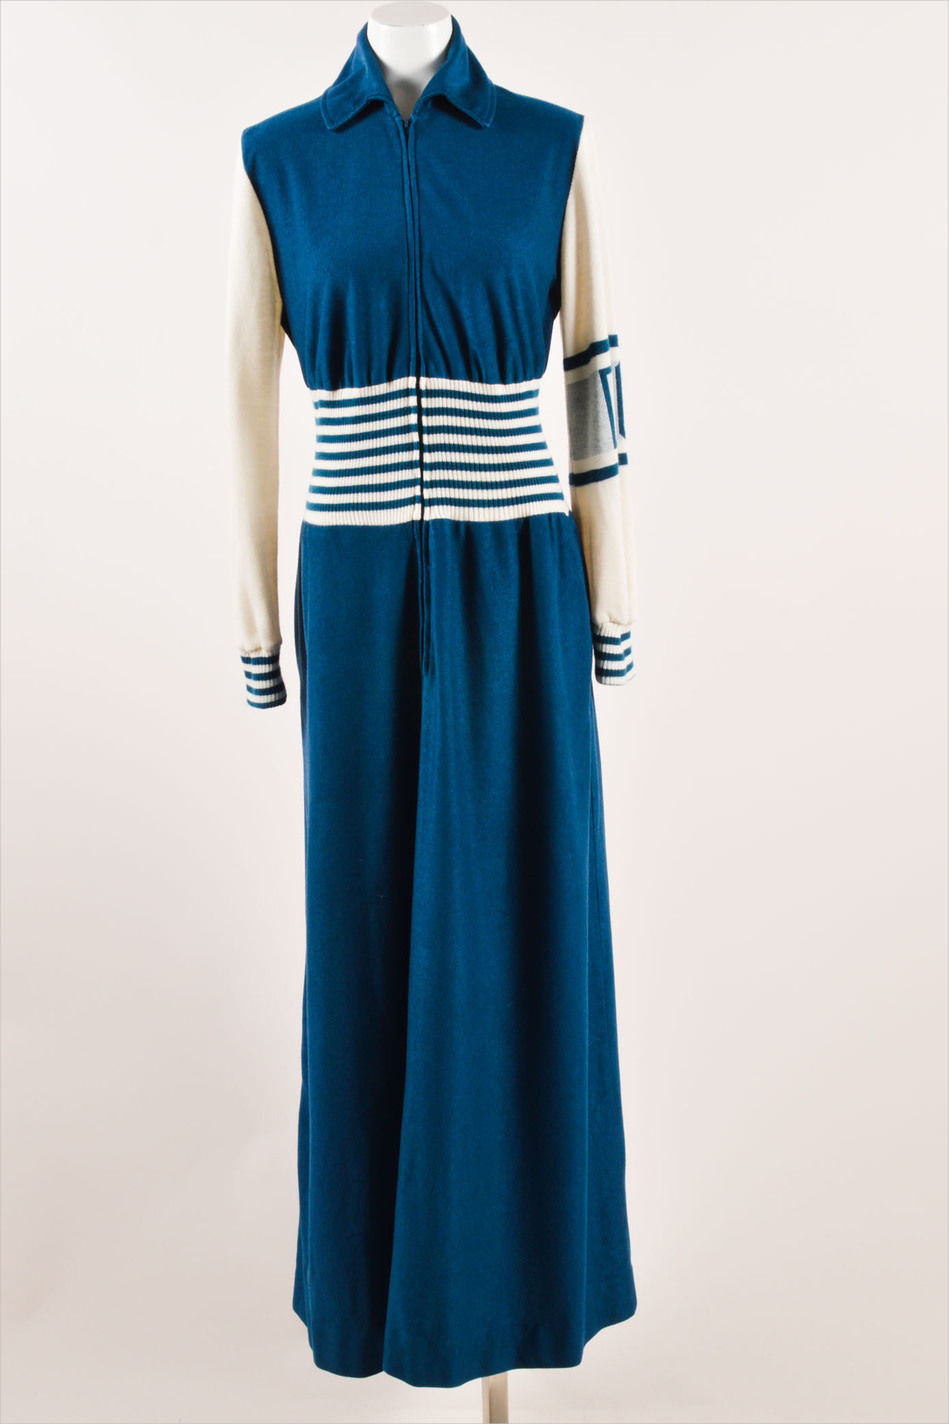 dior blue colored long sleeve dress